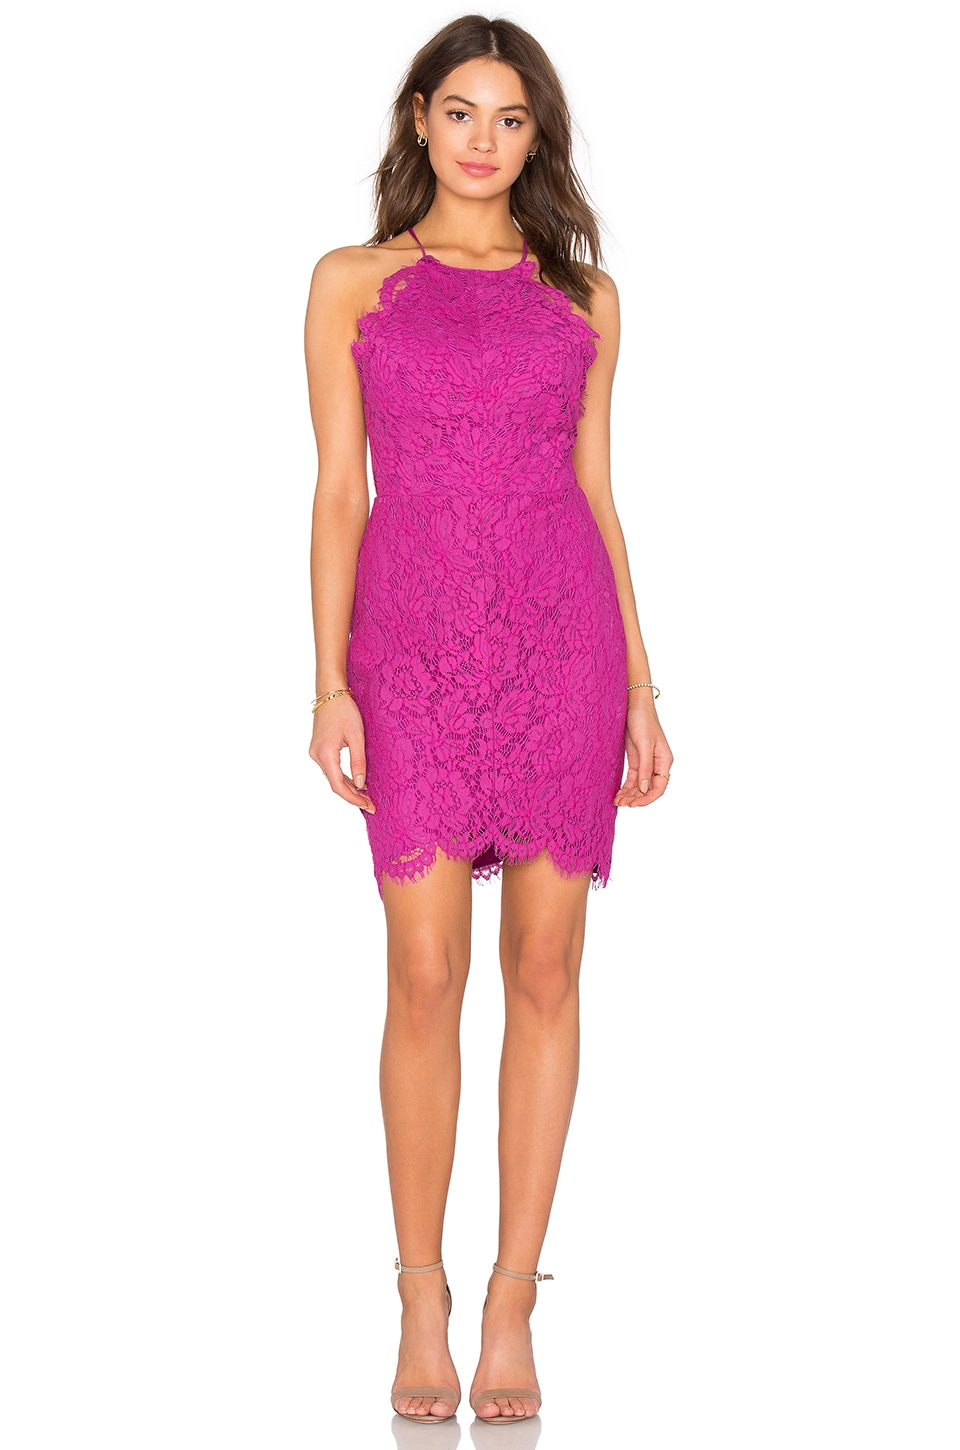 Bobi BLACK Mixed Chiffon Lace Bodycon Dress in Berry | REVOLVE